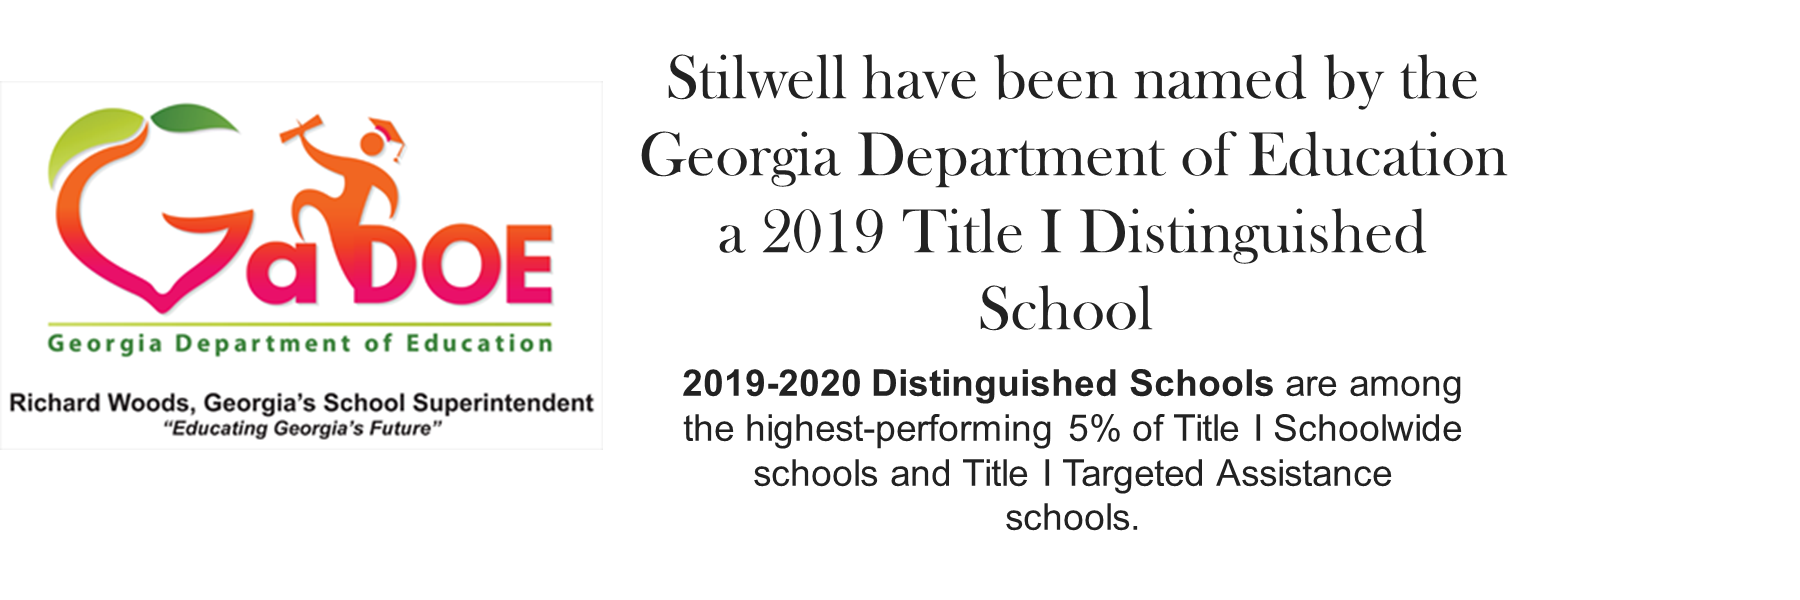 Title I Distinguished School